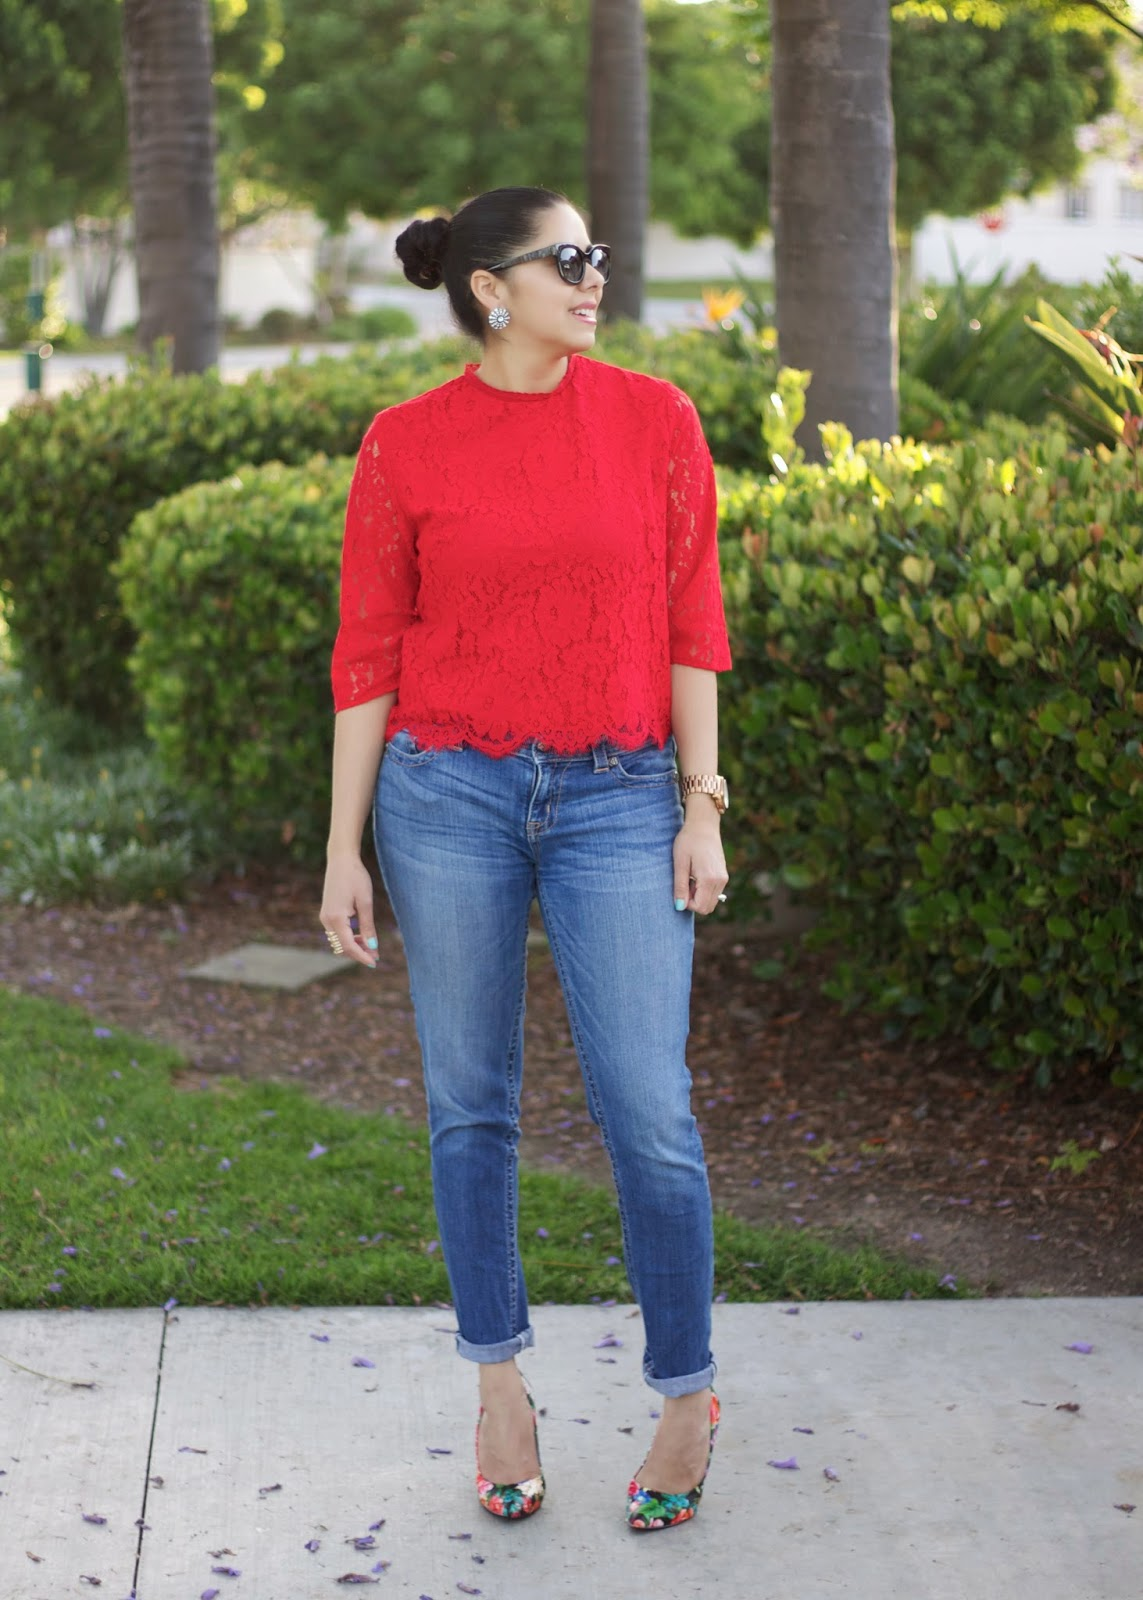 what to wear for drinks, socal fashion blogger, latina fashion blogger